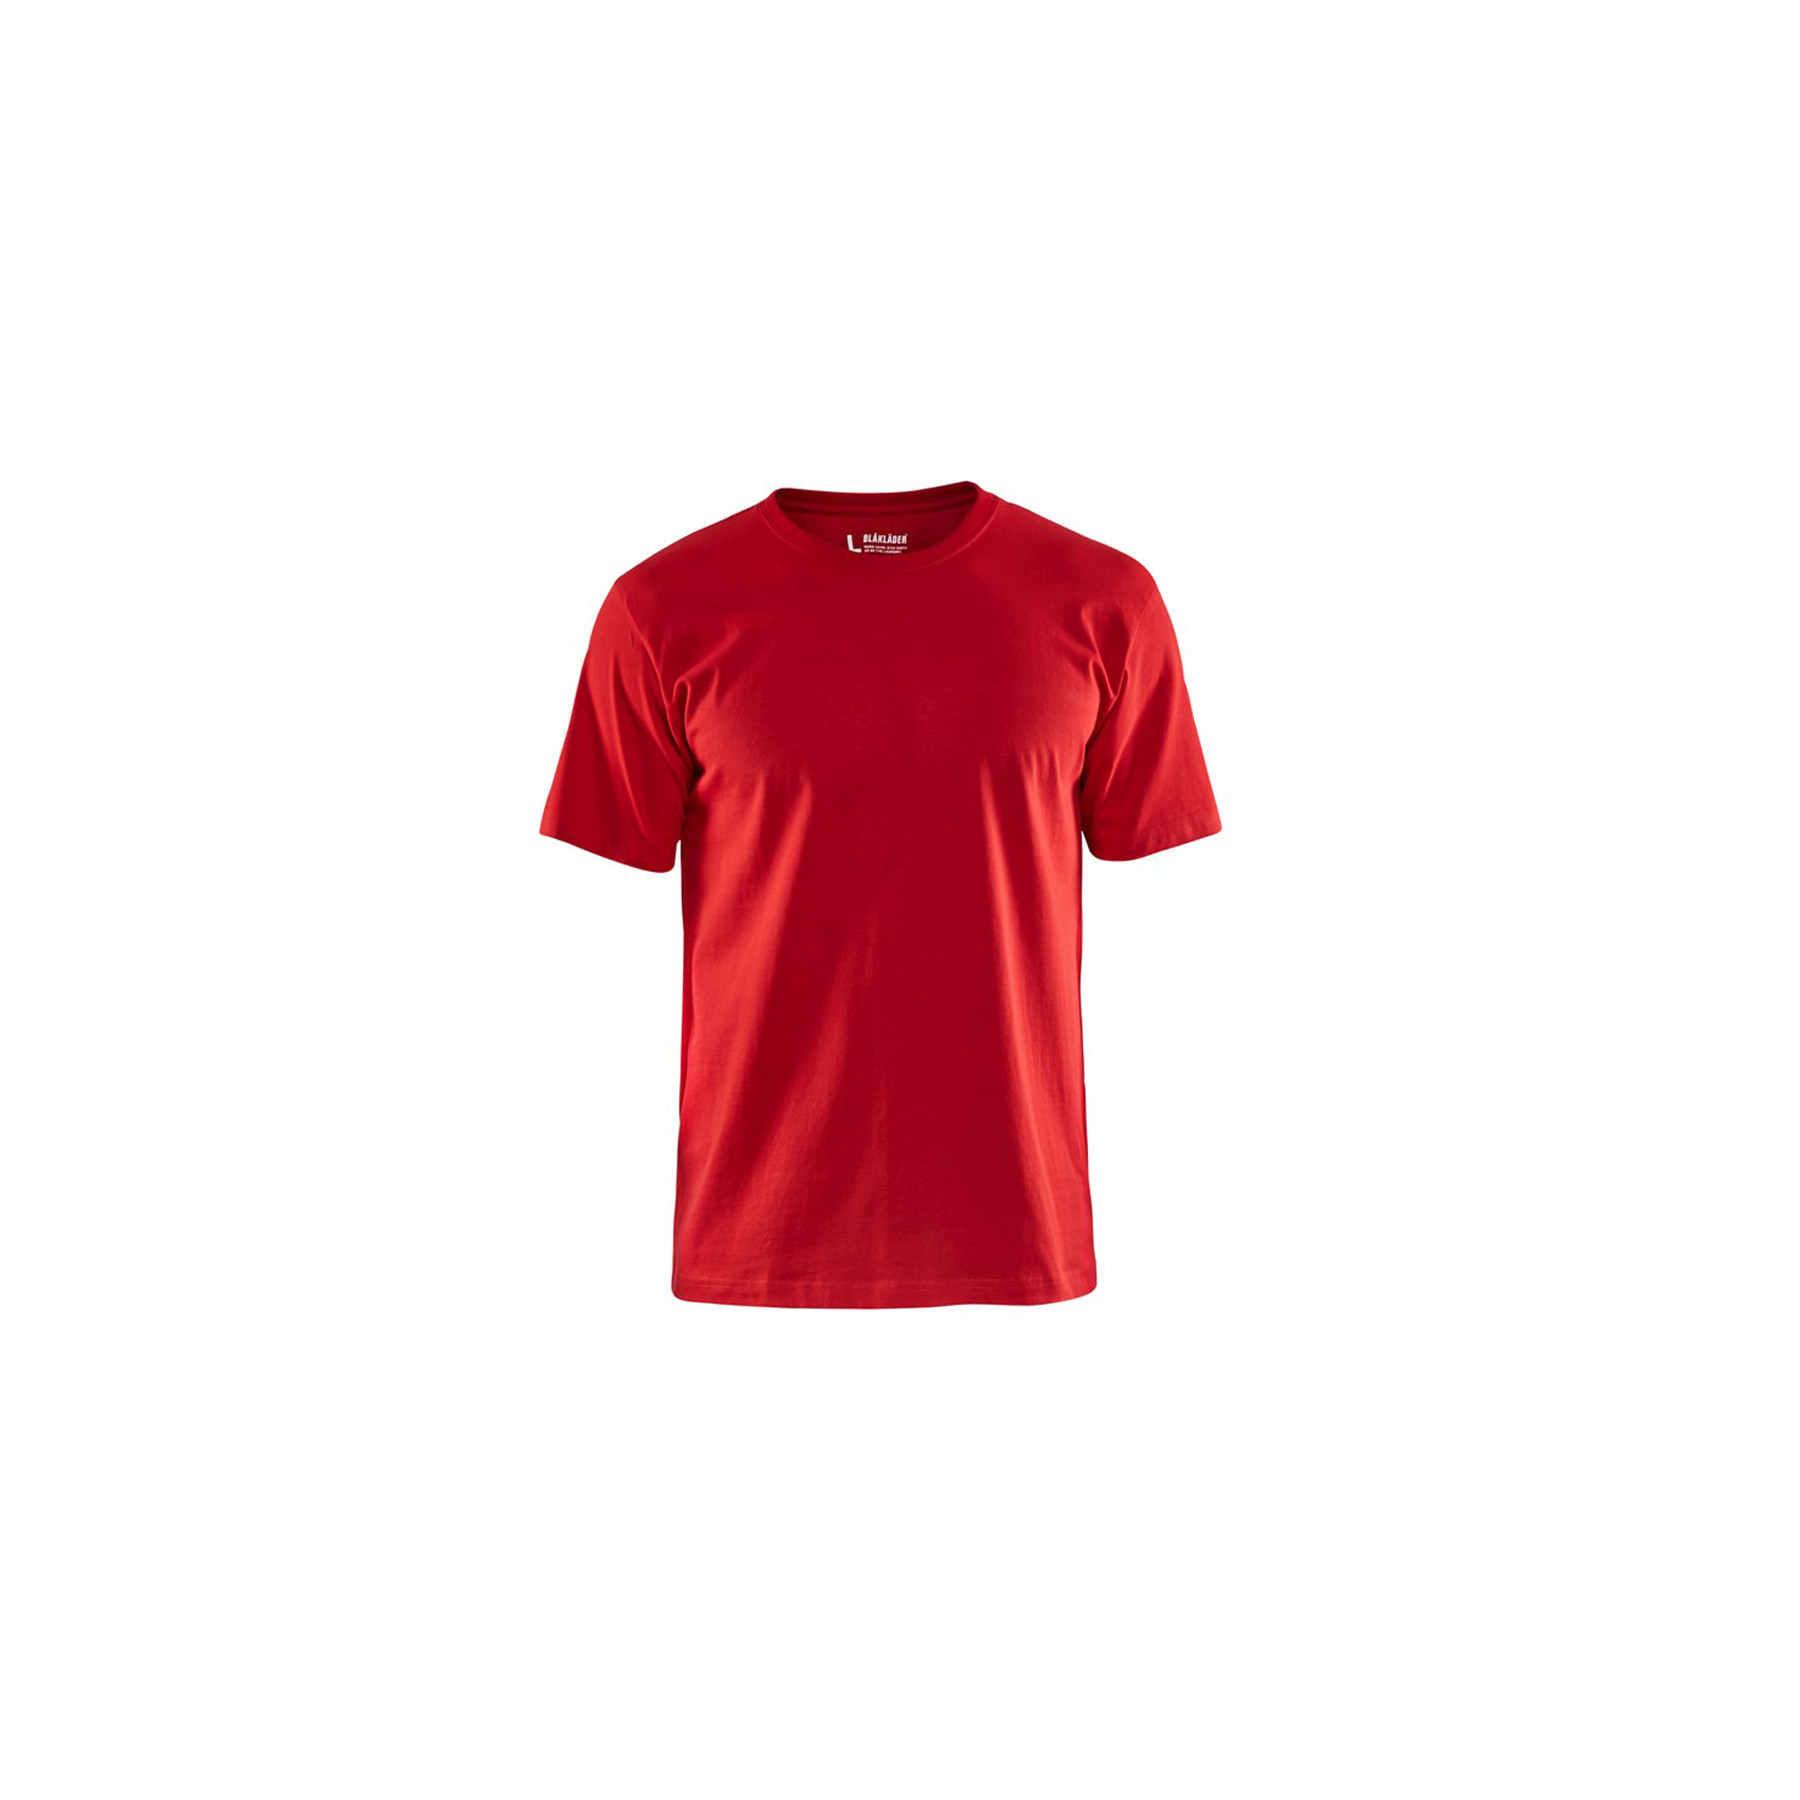 T-shirt Blaklader col rond Homme 100% coton - Rouge